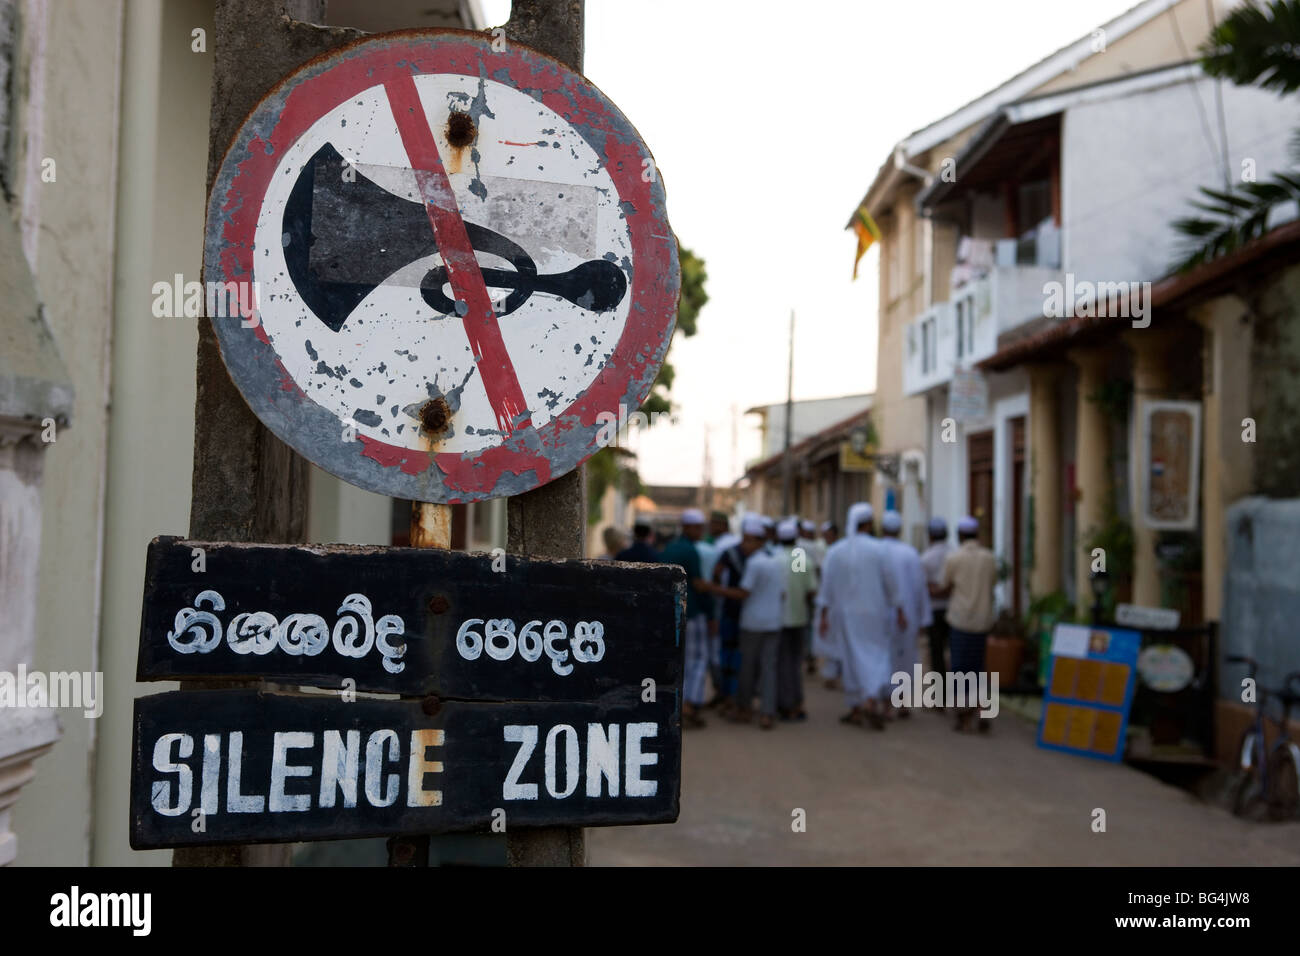 Zone de silence, signe fort de Galle, Sri Lanka Photo Stock